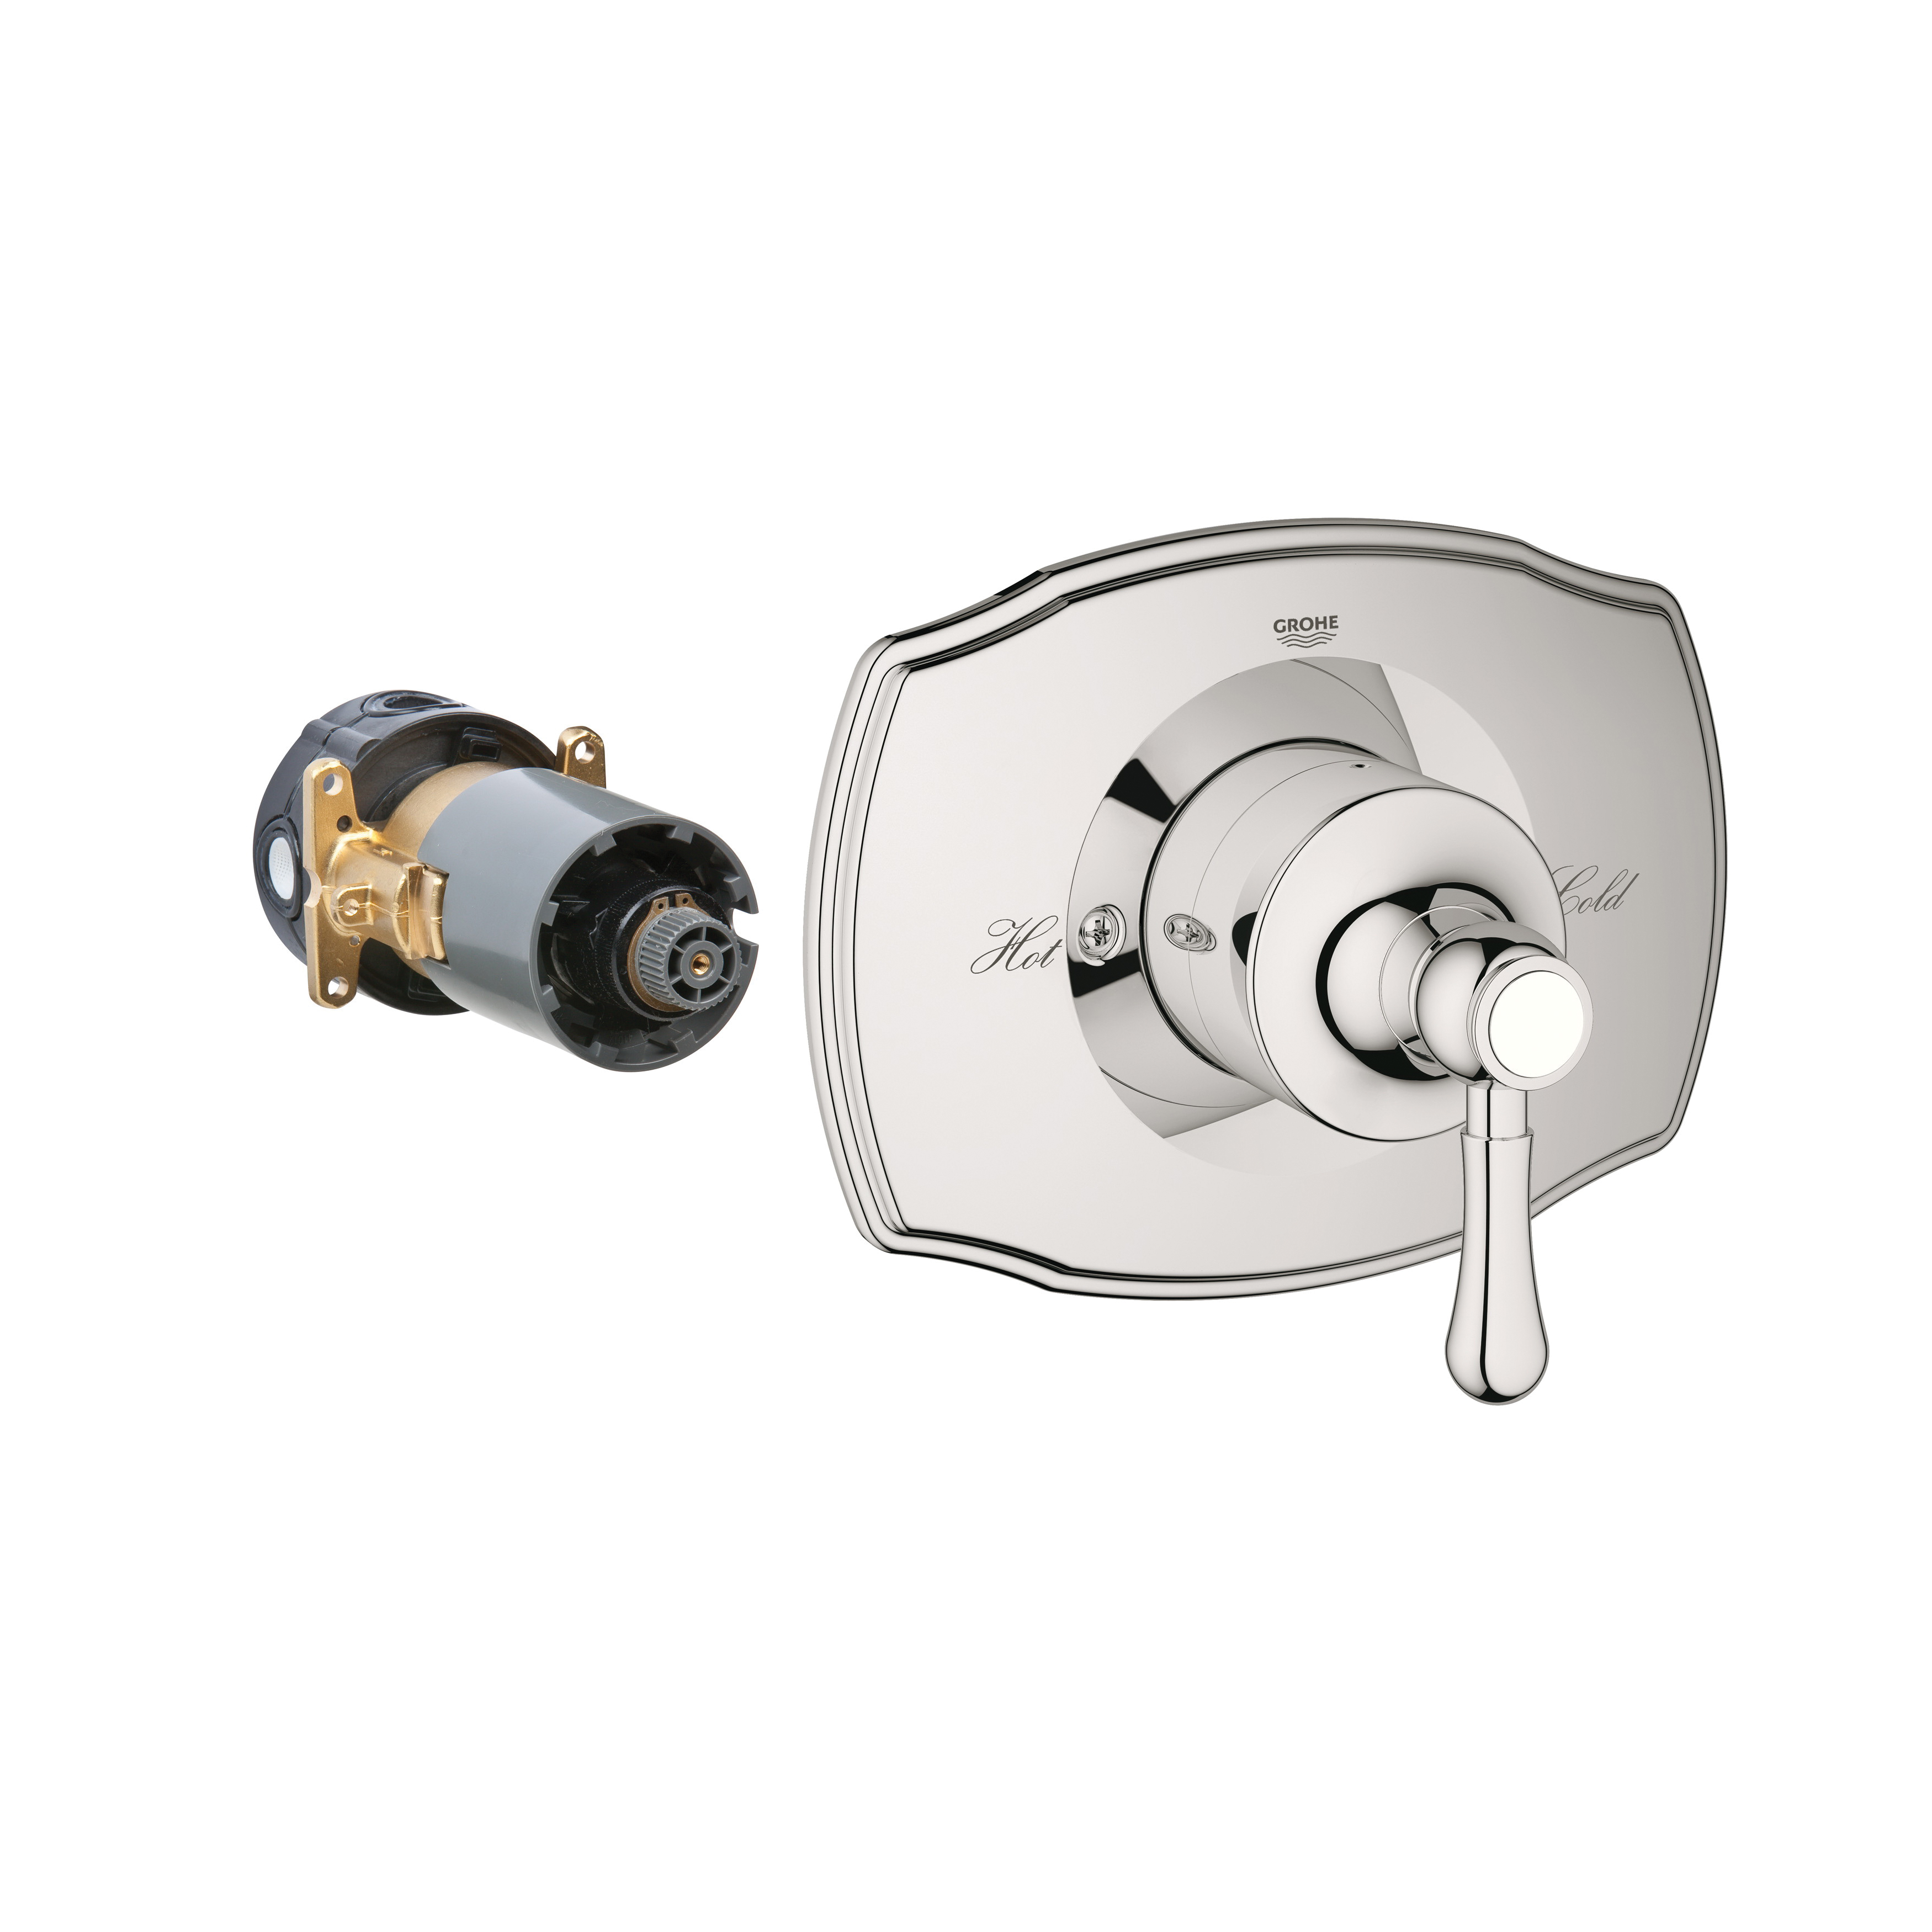 GROHE 19843BE0 GrohFlex™ Valve Trim, 6.6 gpm Shower, Polished Nickel